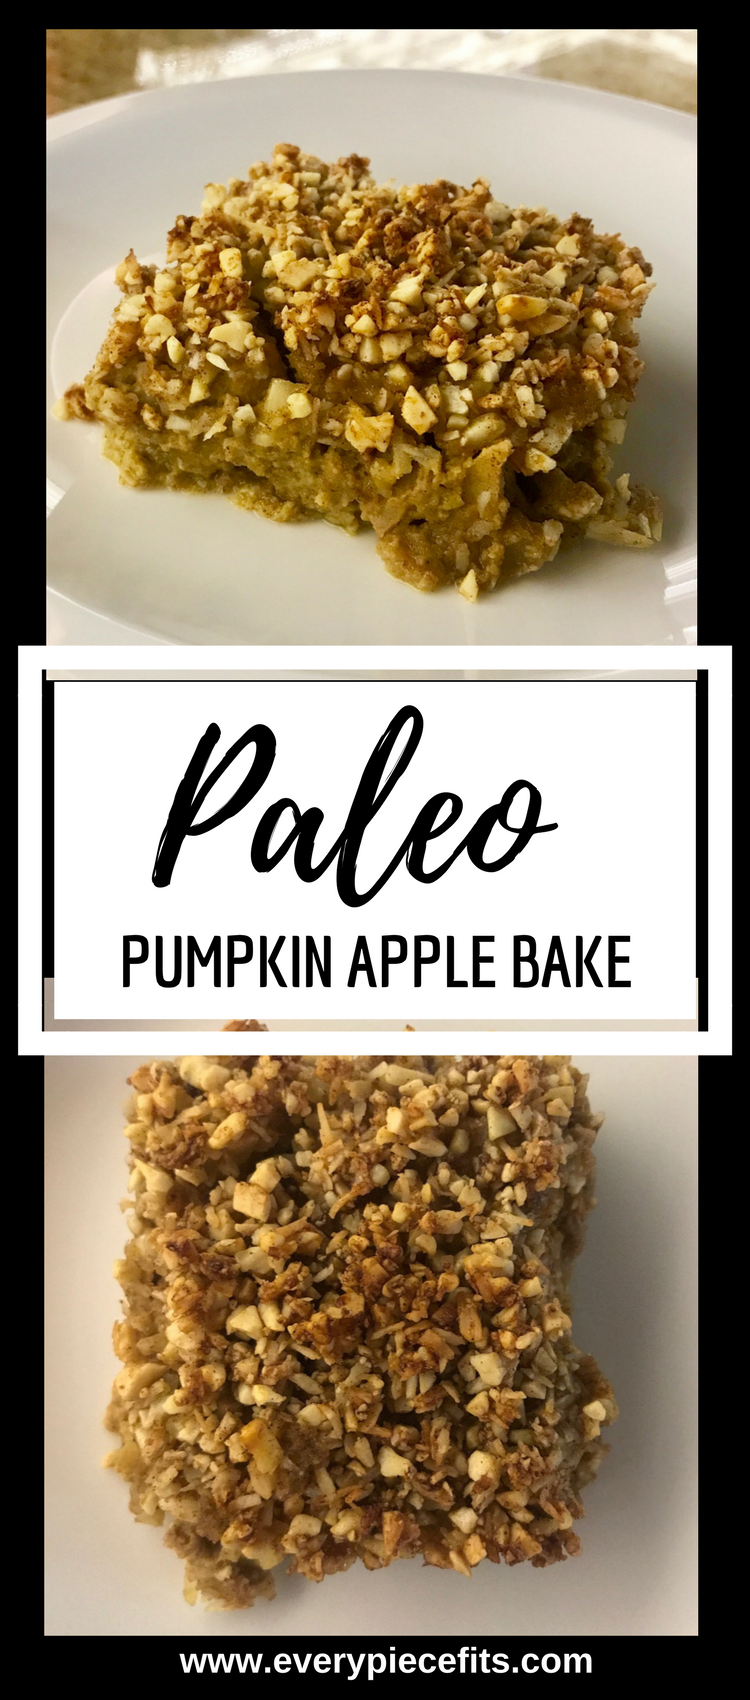 Paleo Pumpkin Apple Bake.png